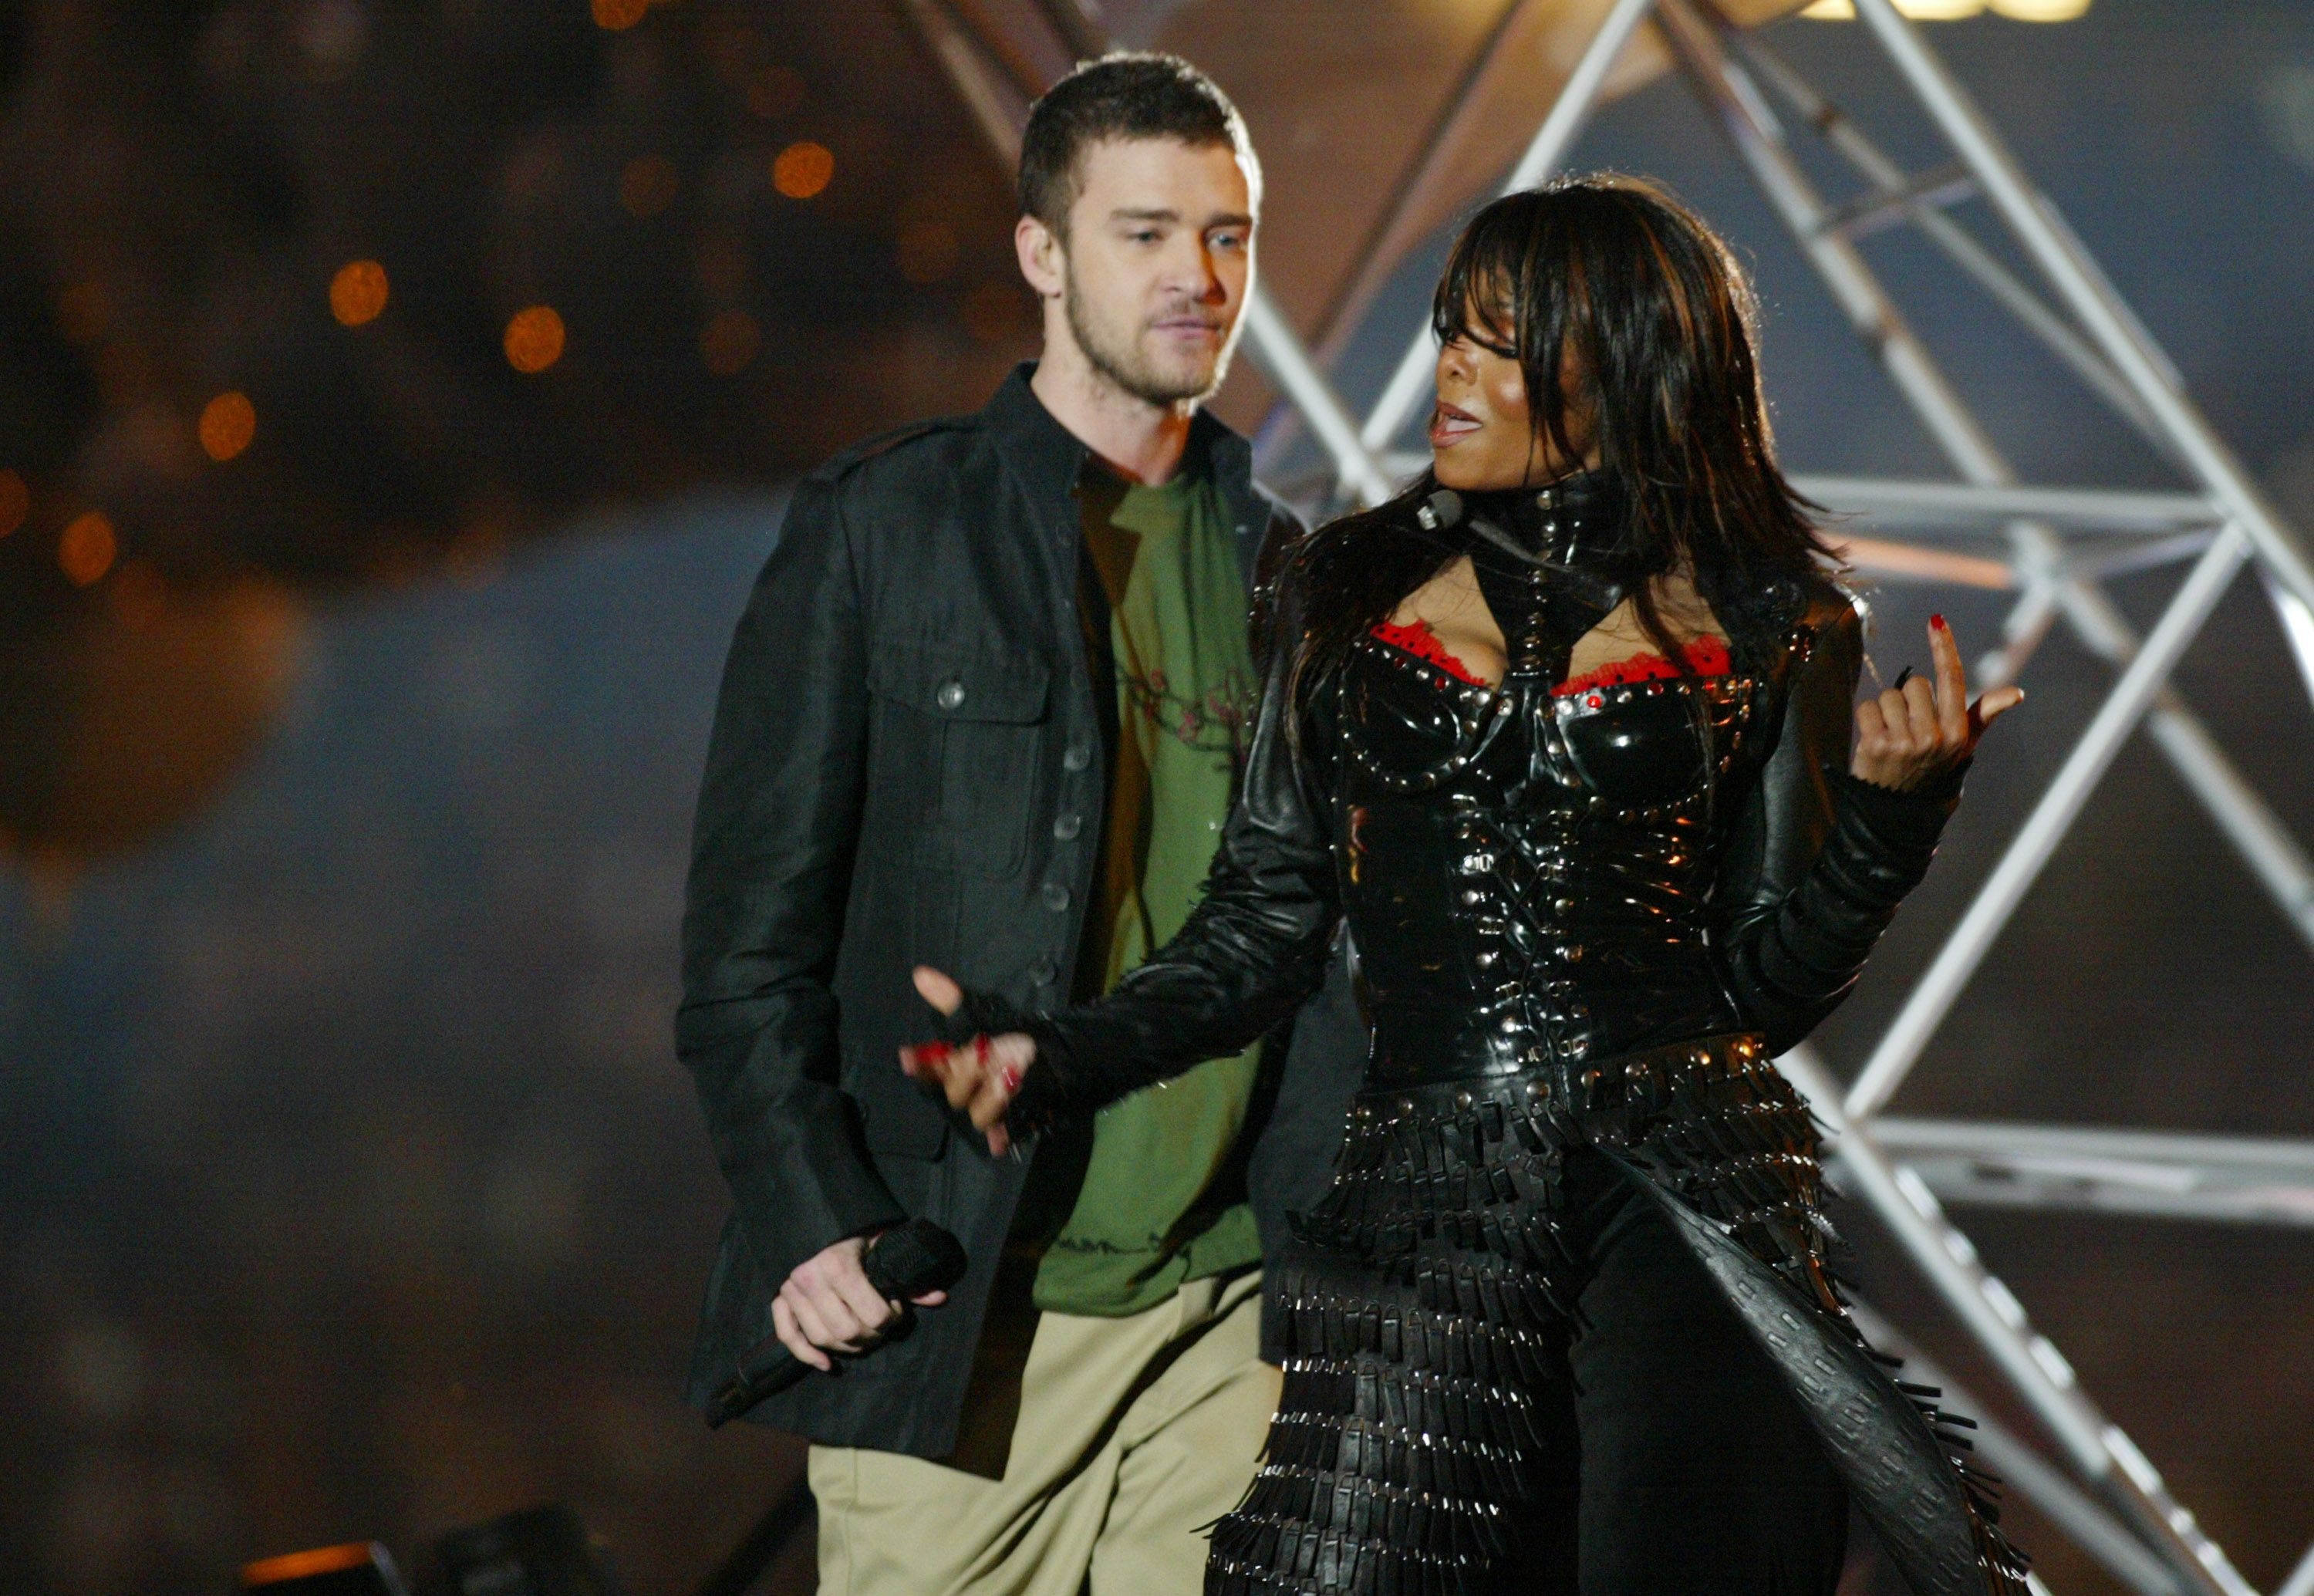 Justin Timberlake and Janet Jackson at the Super Bowl XXXVIII halftime show in Houston, Texas | Source: Getty Images